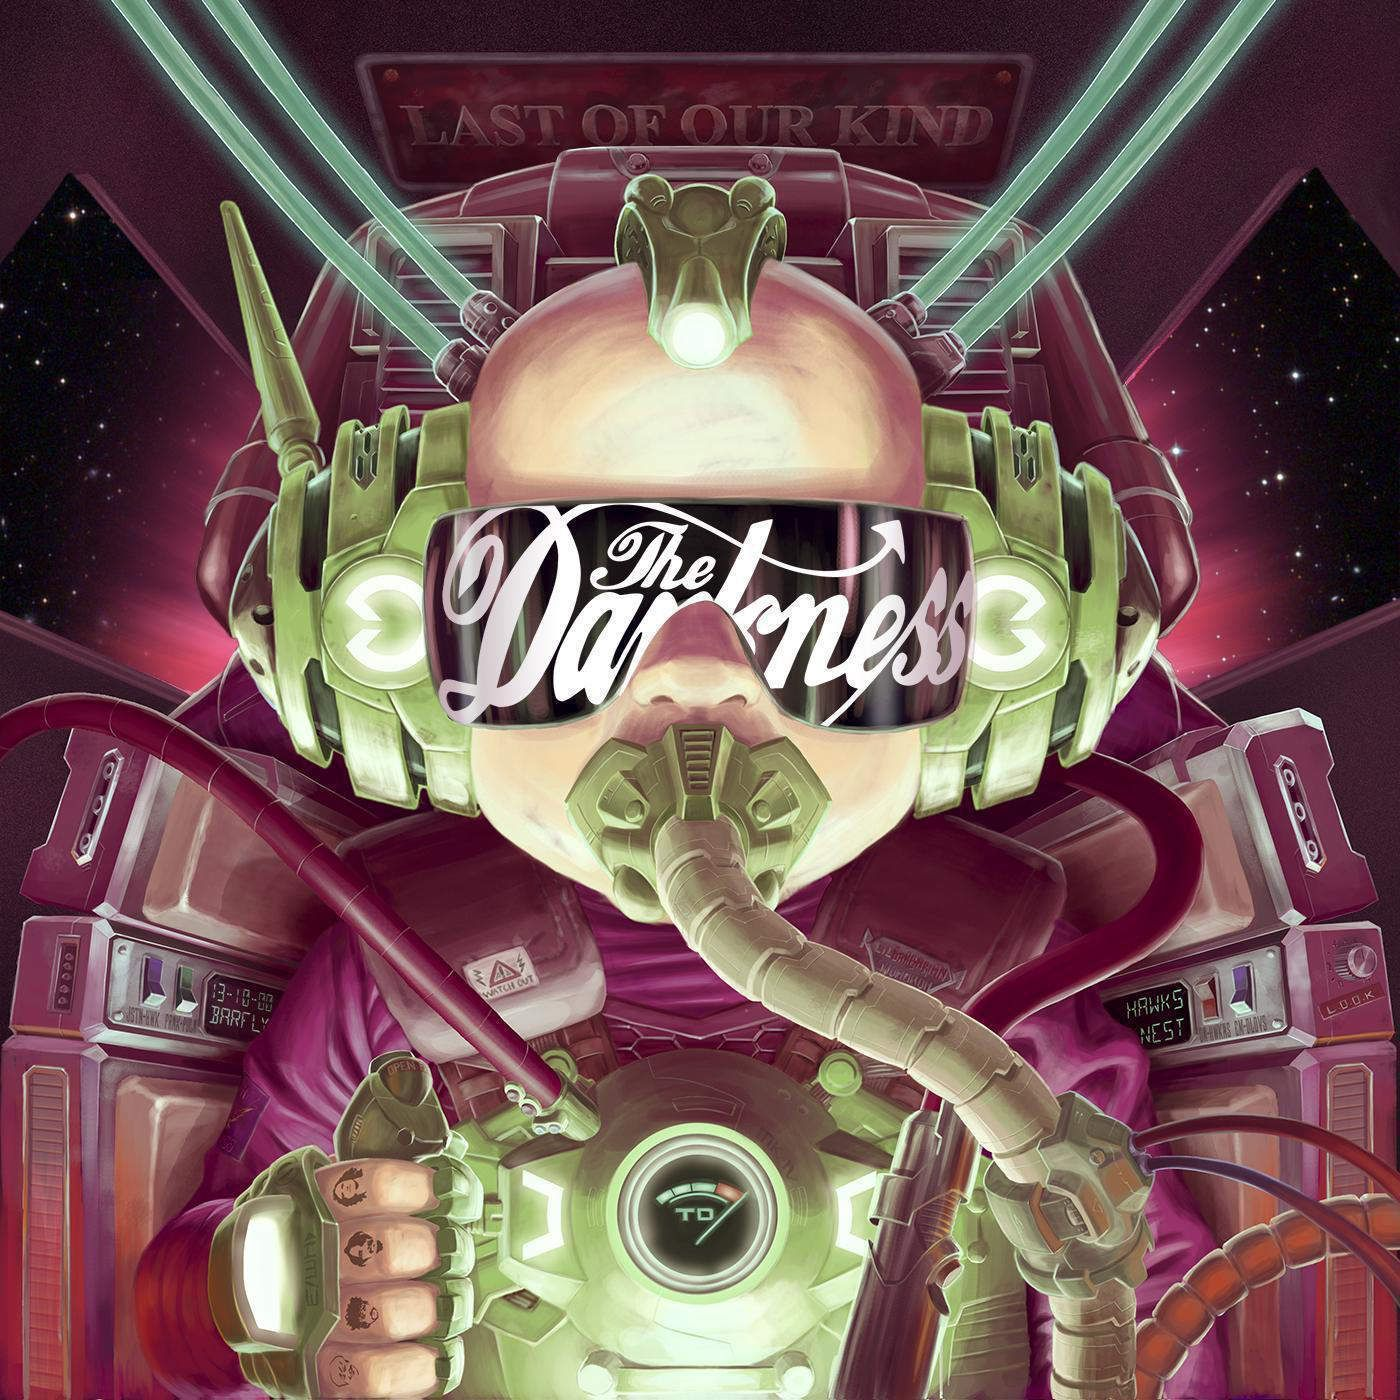 The Darkness - Last Of Our Kind album cover